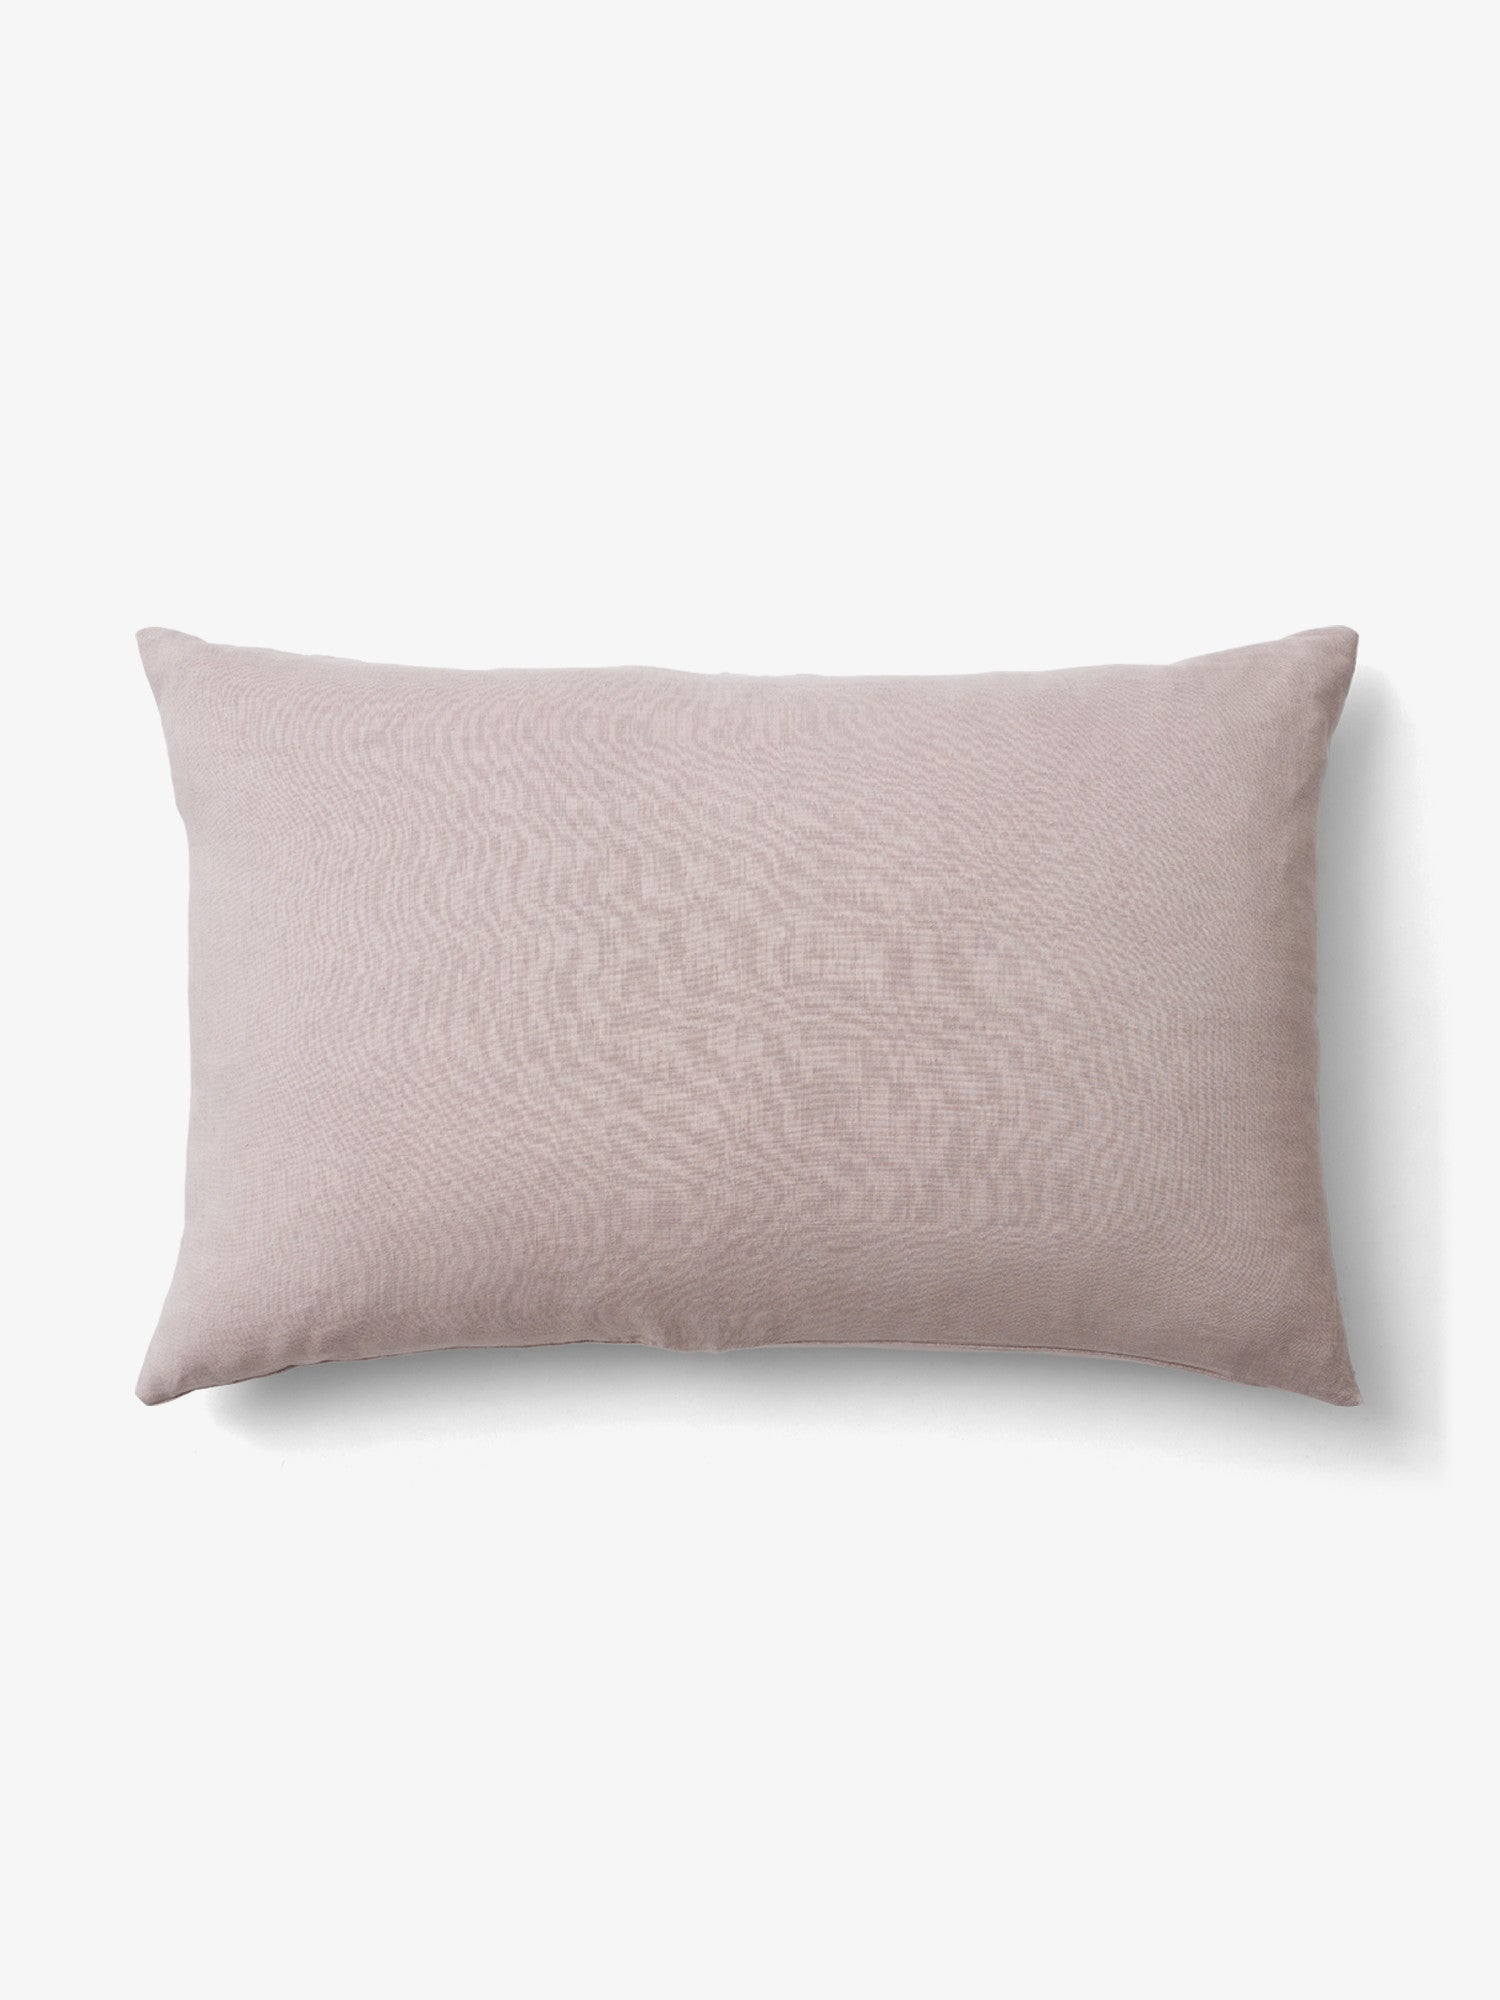 Collect Pillow 50x80cm - Linen